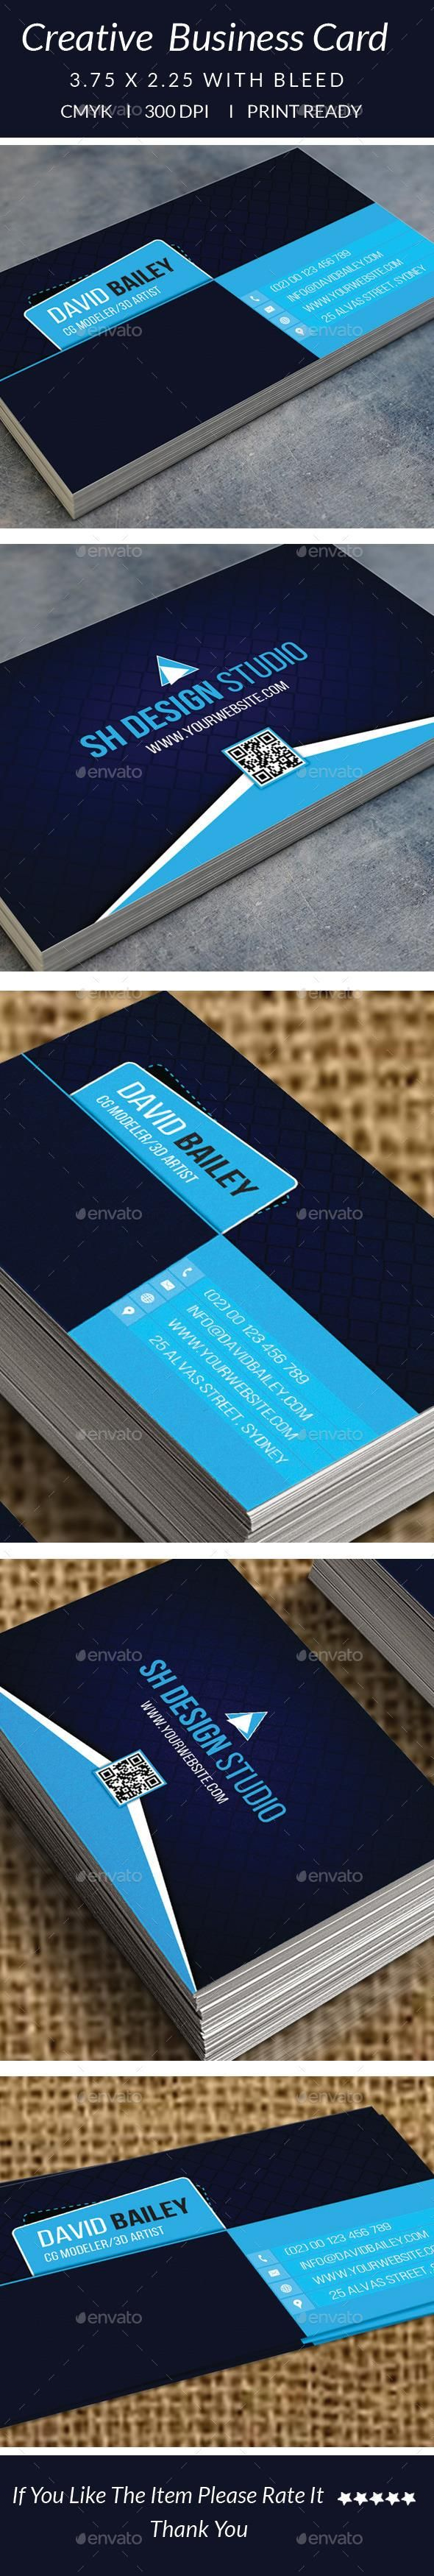 649 best business cards images on pinterest